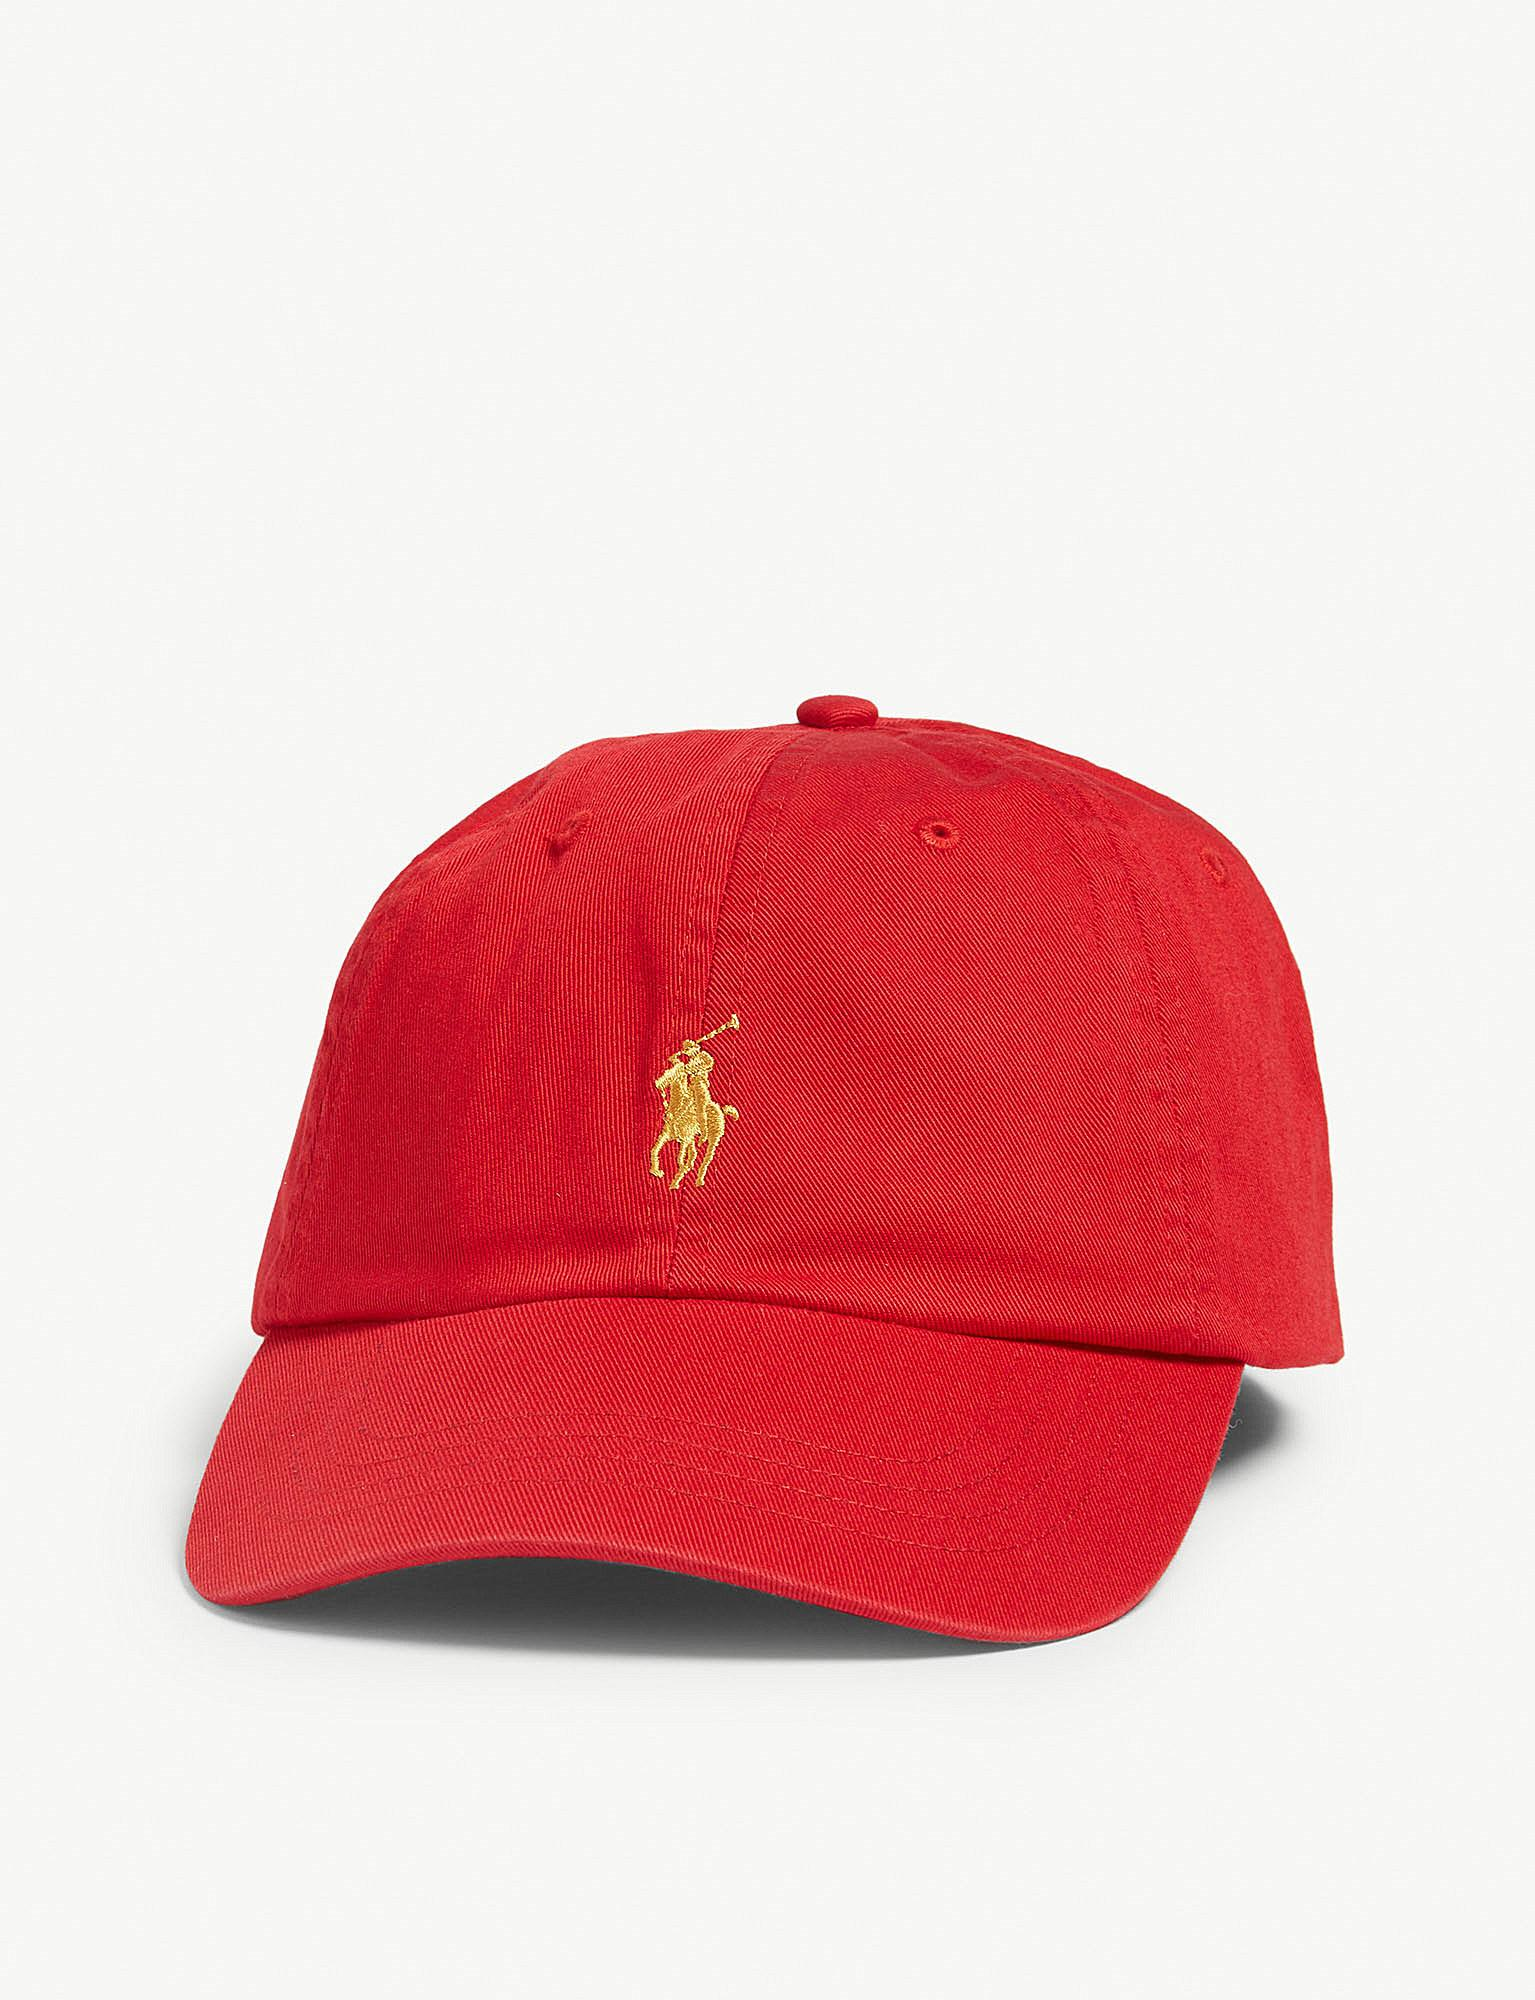 Lyst - Polo Ralph Lauren Logo Cotton Cap With Leather Strap in Red ... 88ce735f03b2